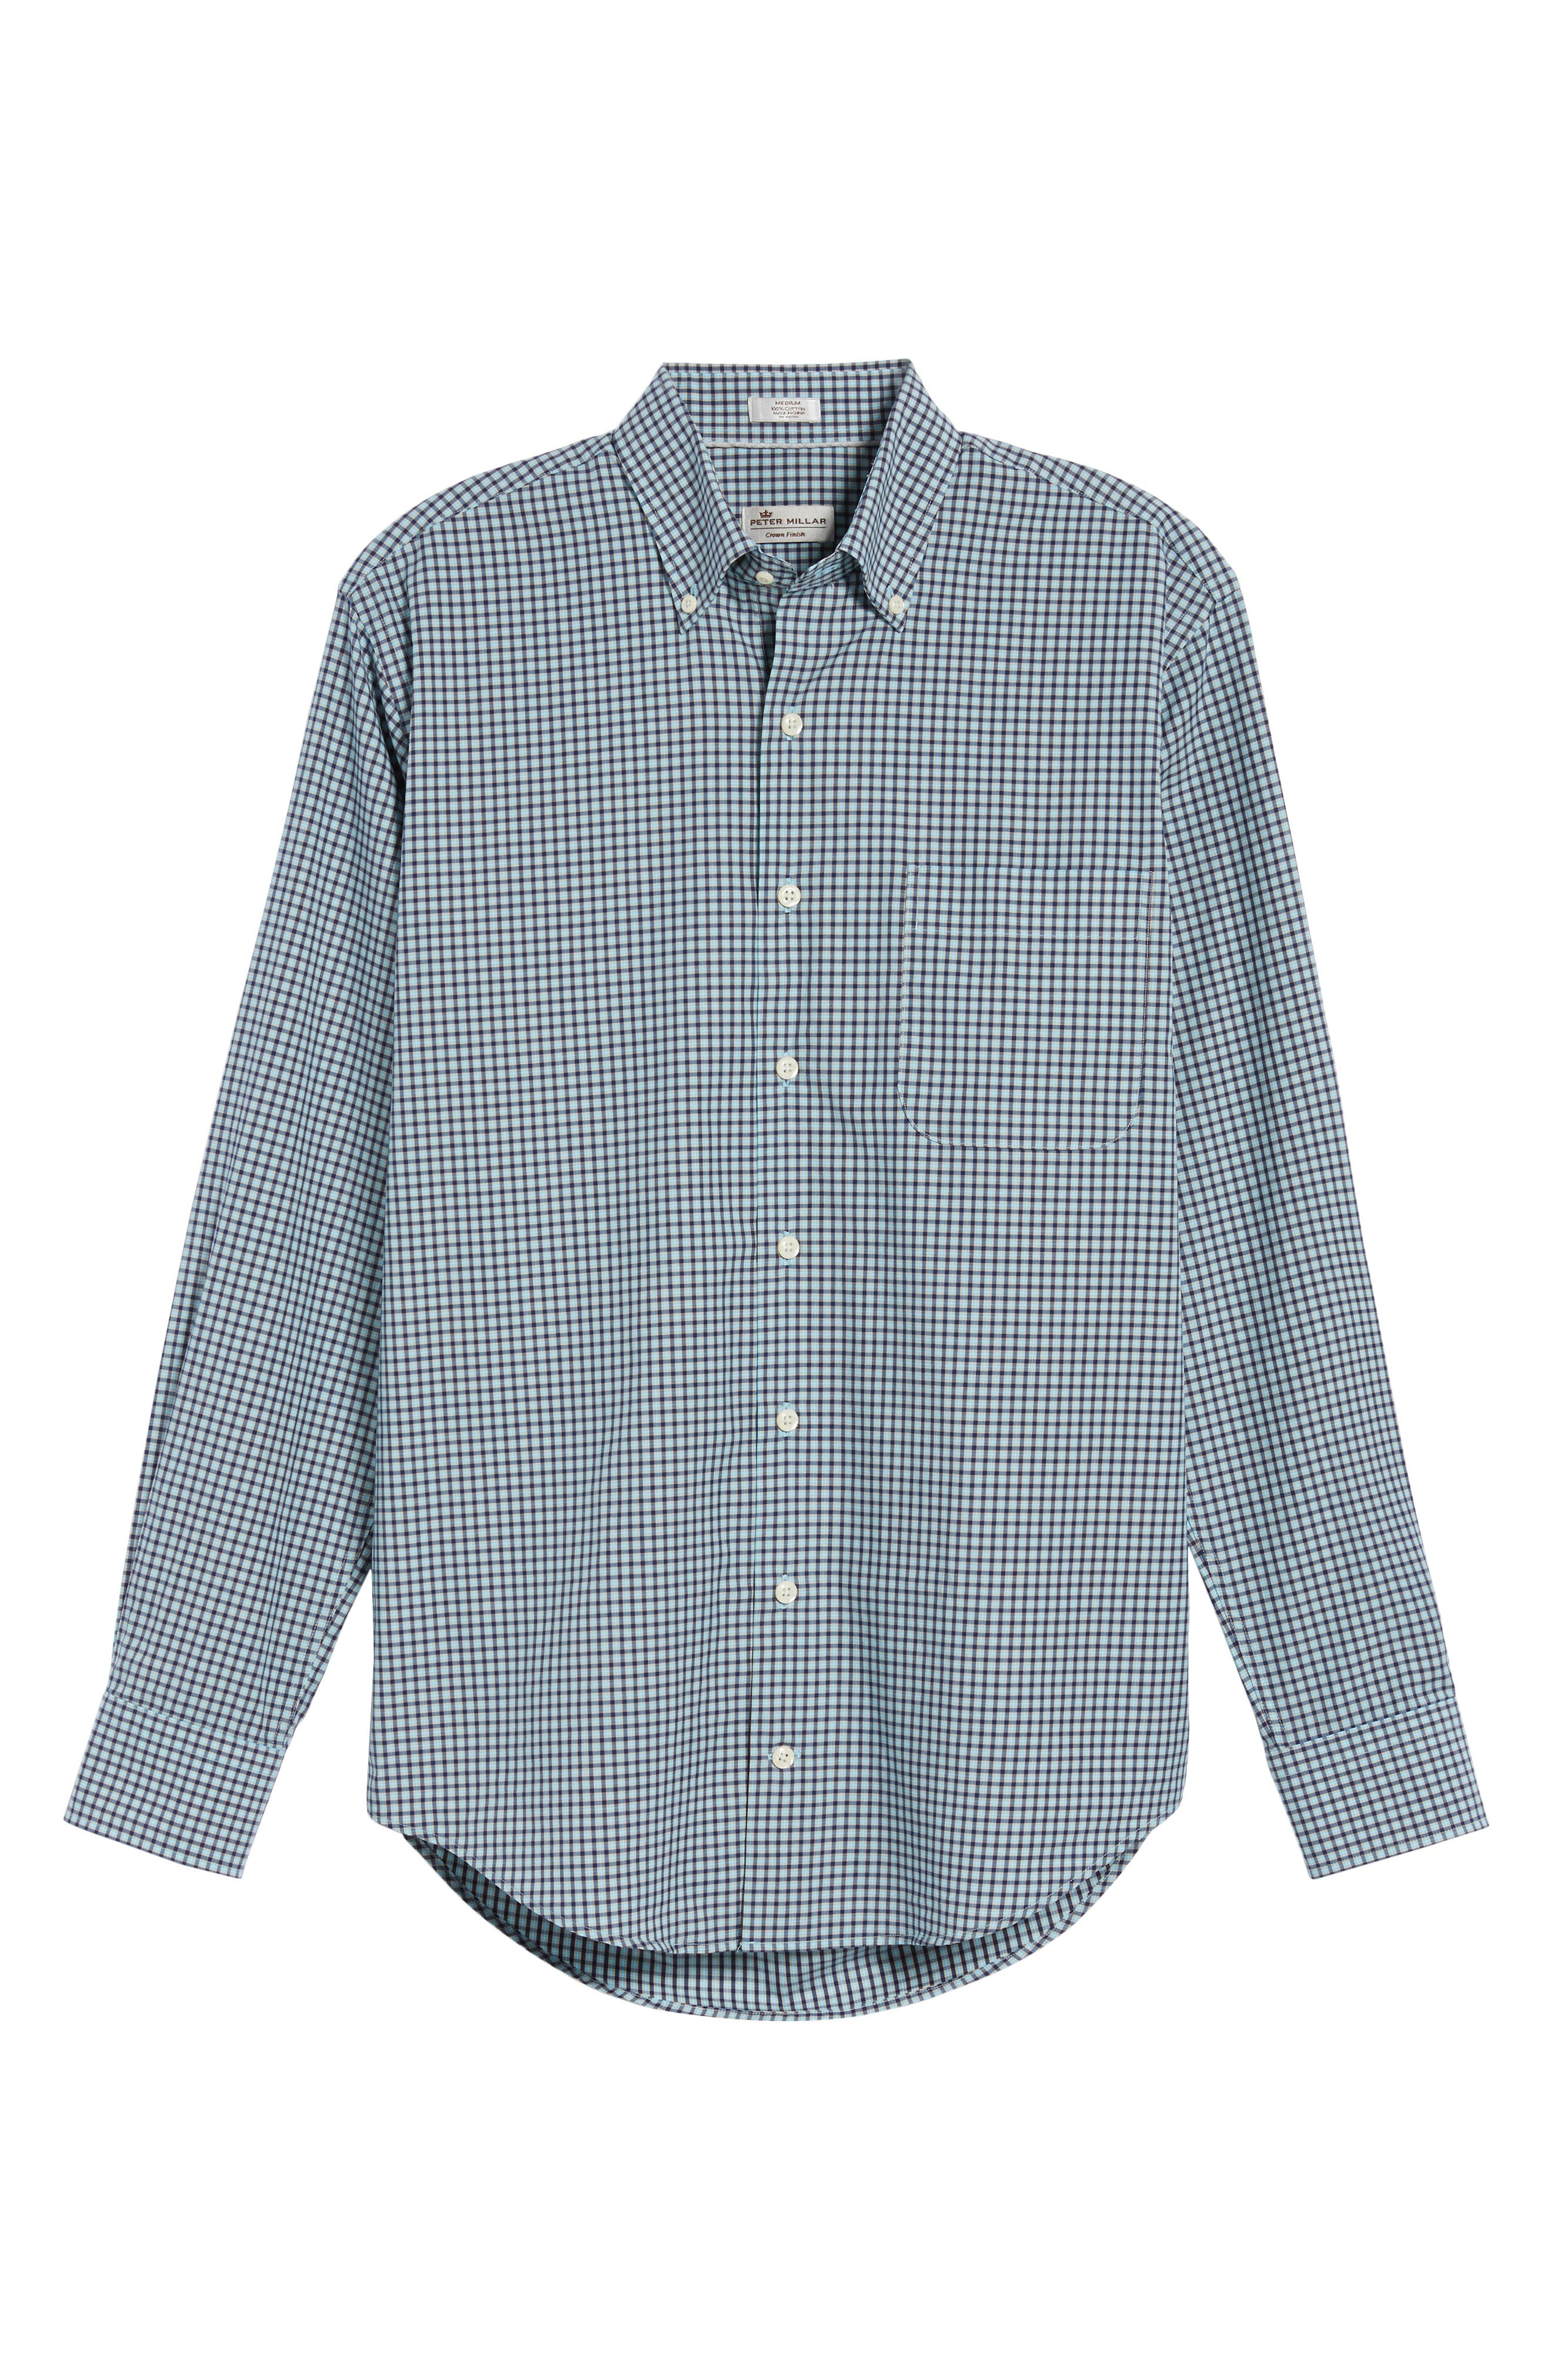 Classic Fit Alligator Check Sport Shirt,                             Alternate thumbnail 17, color,